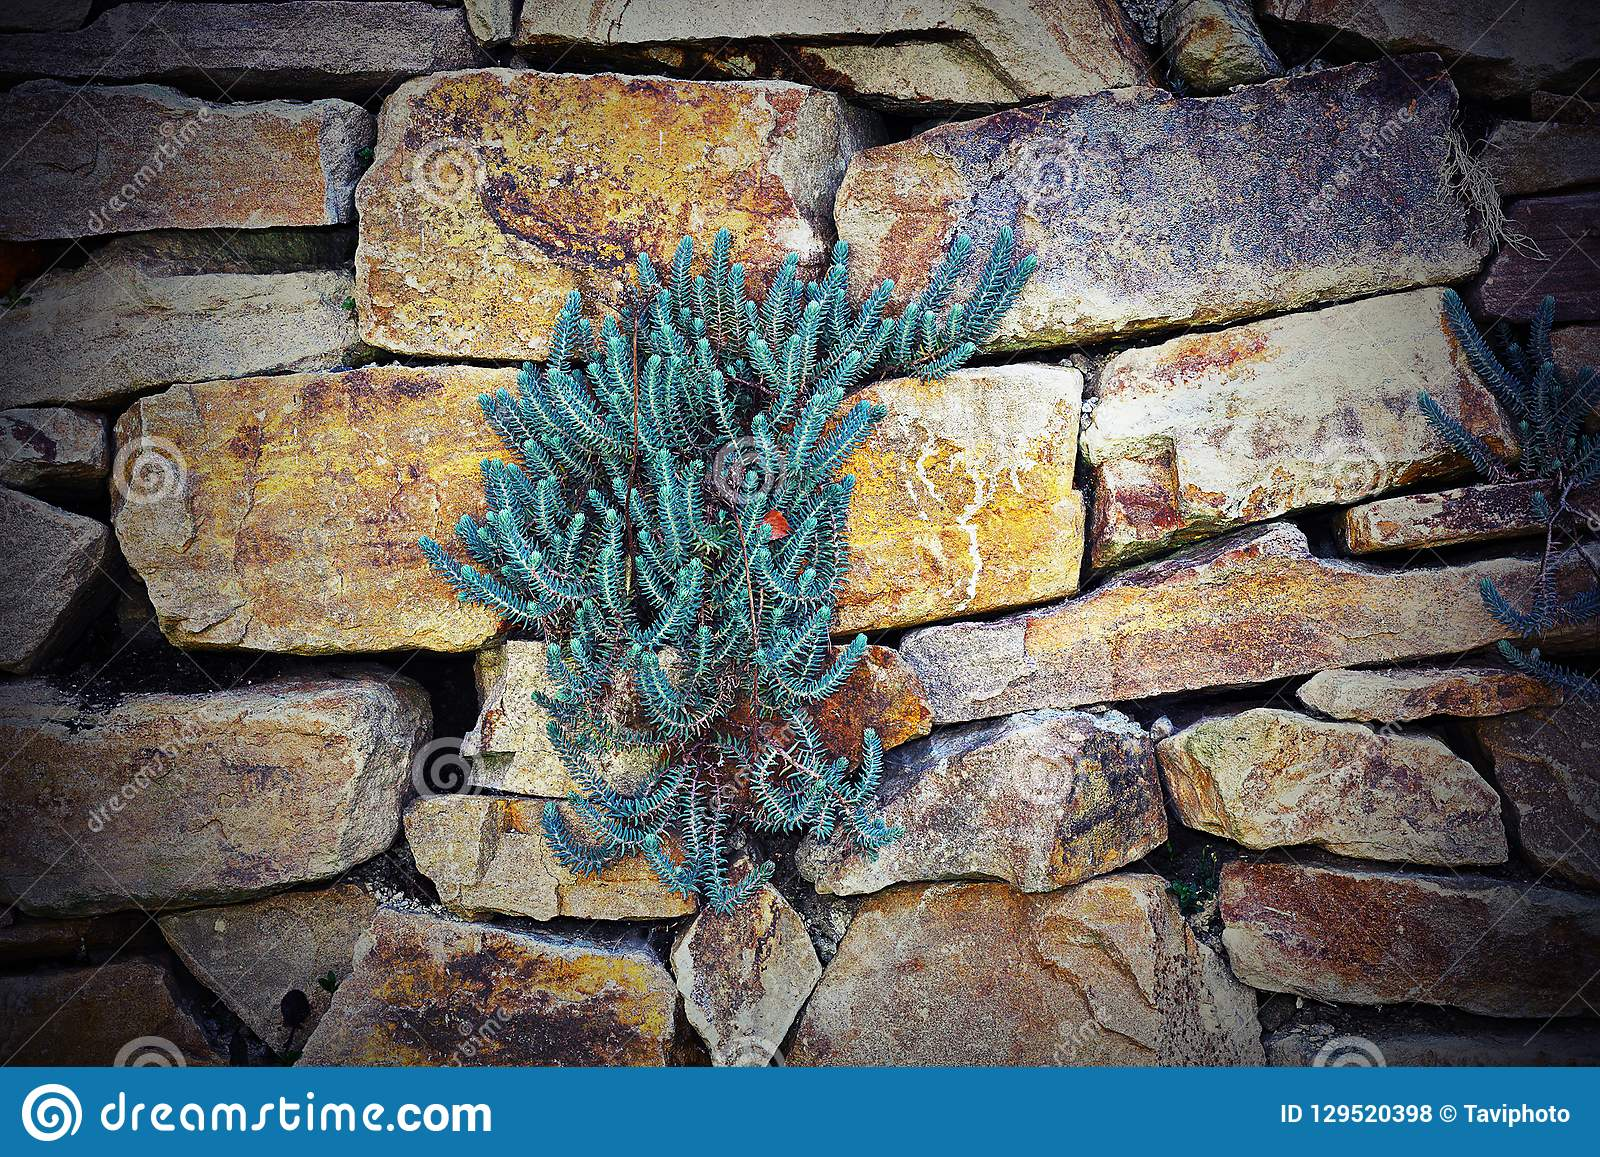 Plants growing on stone wall